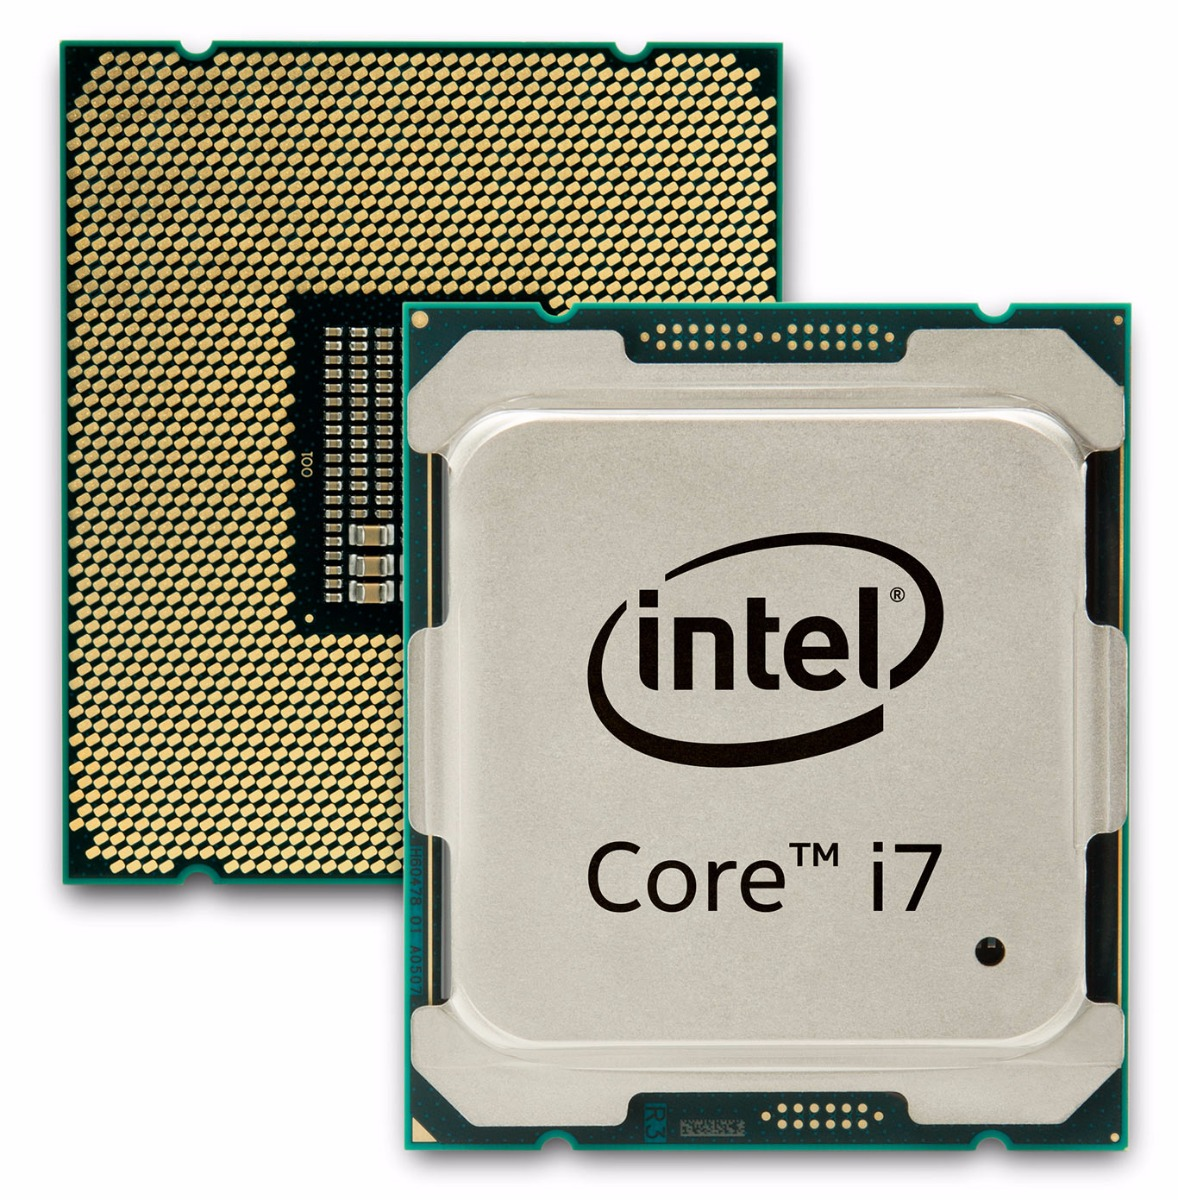 Intel Core i7-6950X 10-Core CPU Review: Broadwell-E Takes Flight